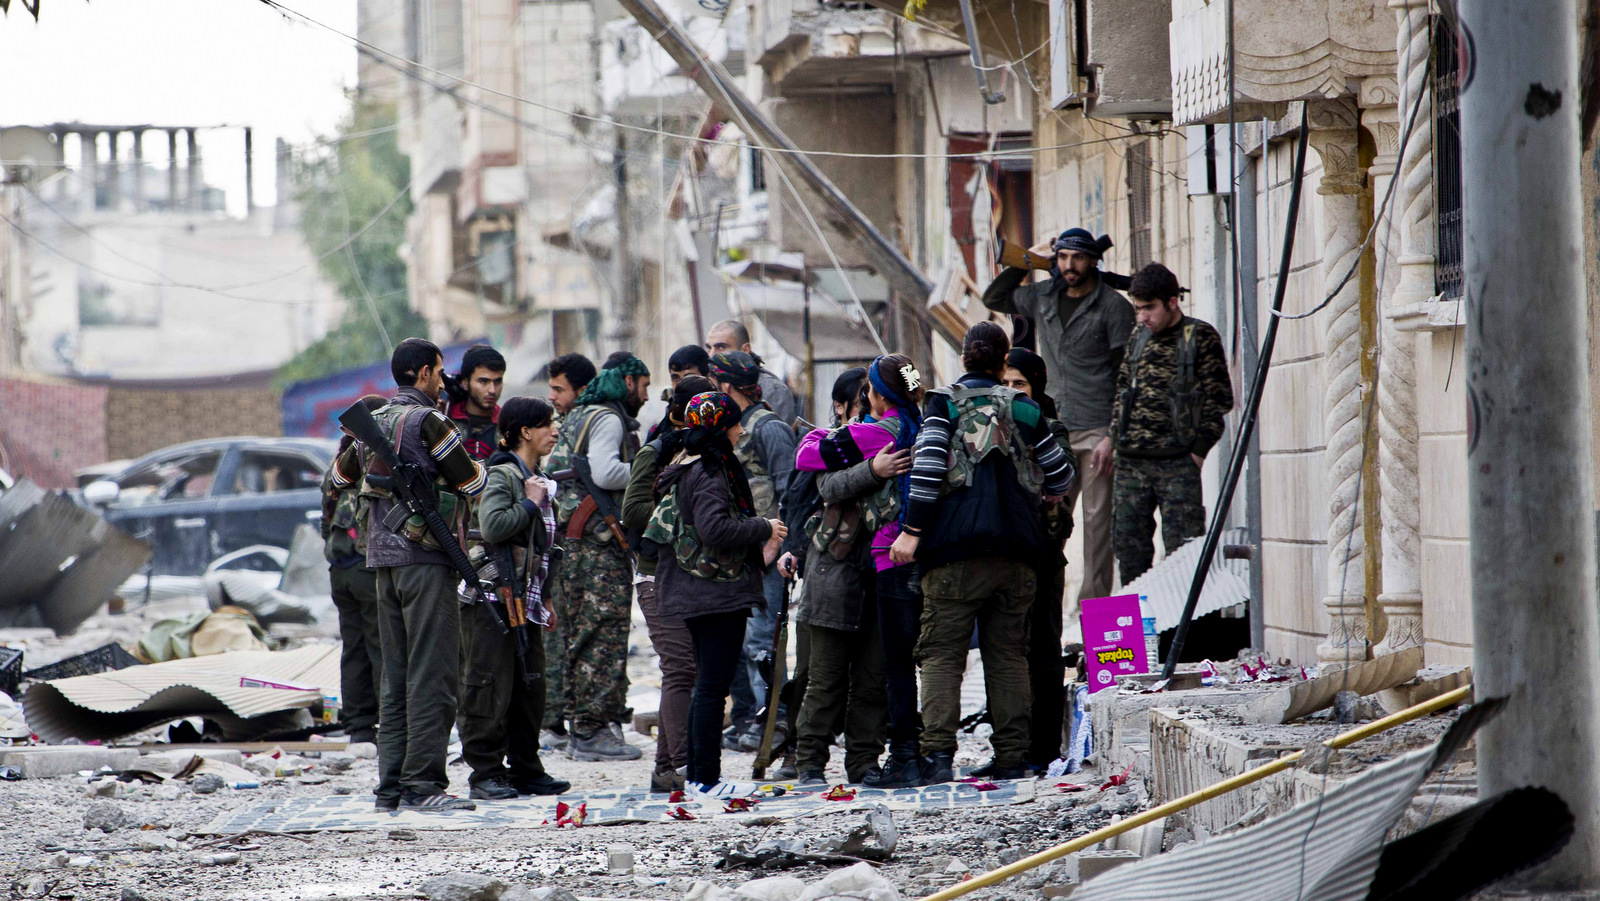 Kurdish Militias in Conflict-Ridden Northeastern Syria Turn to Kidnapping, Conscription, ISIS-like Tactics